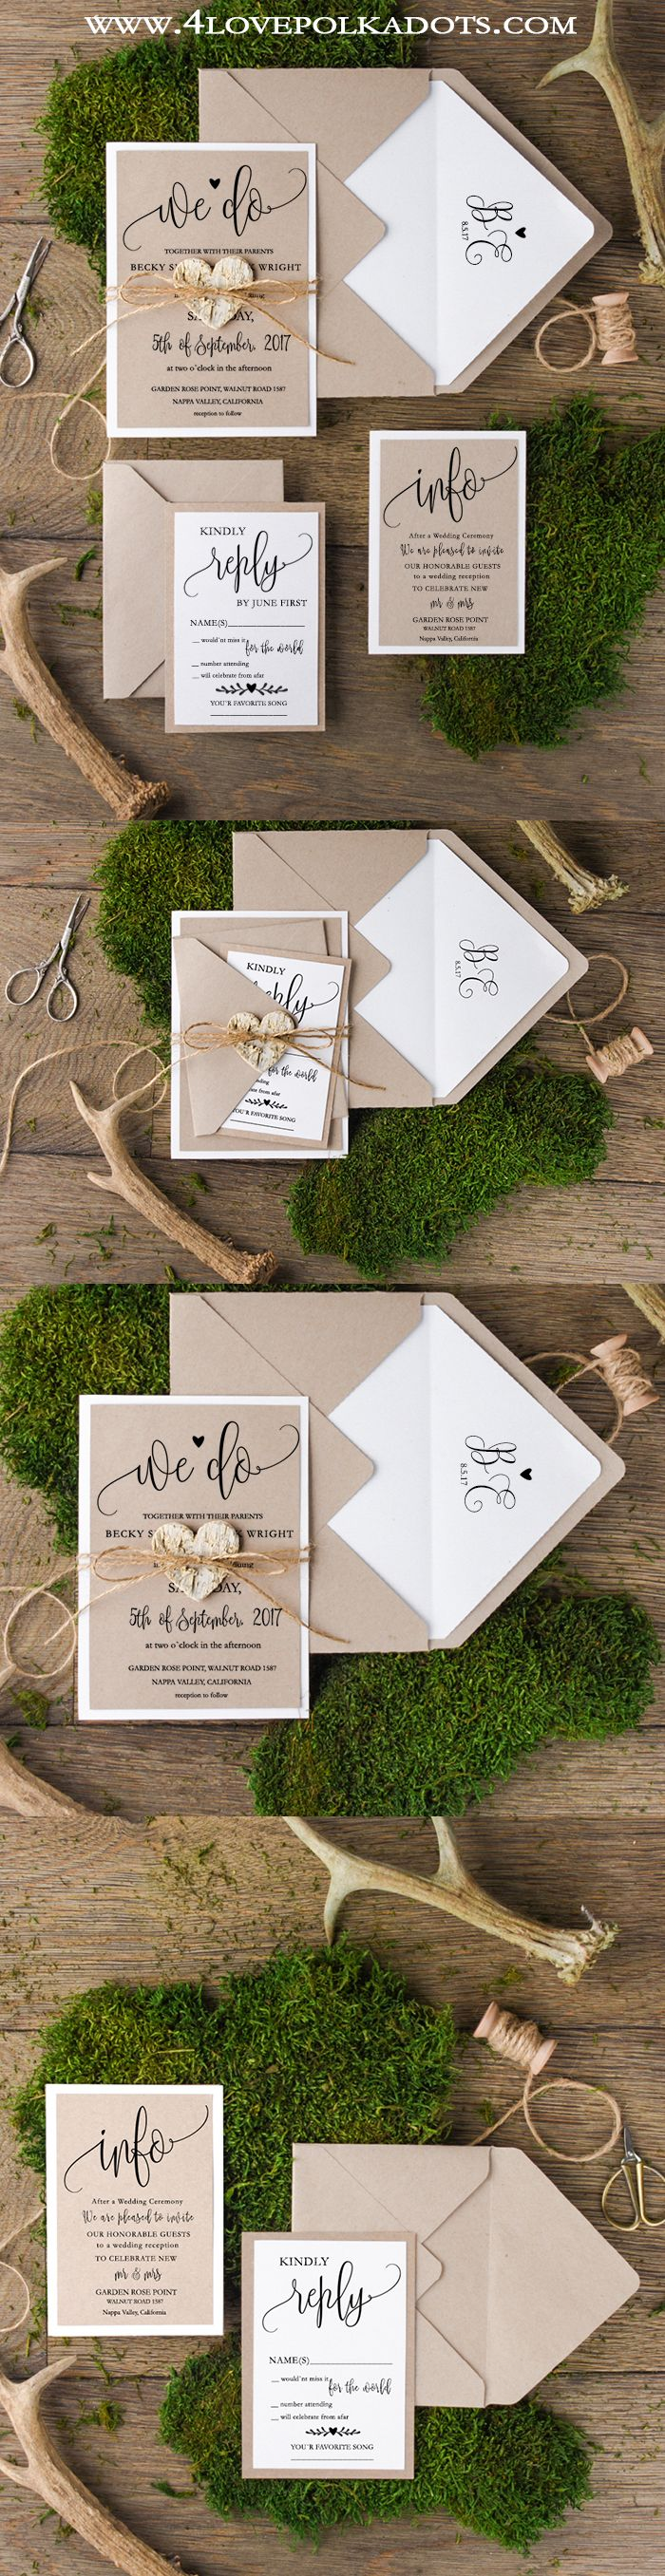 Best 25+ Rustic wedding invitations ideas on Pinterest | Rustic ...